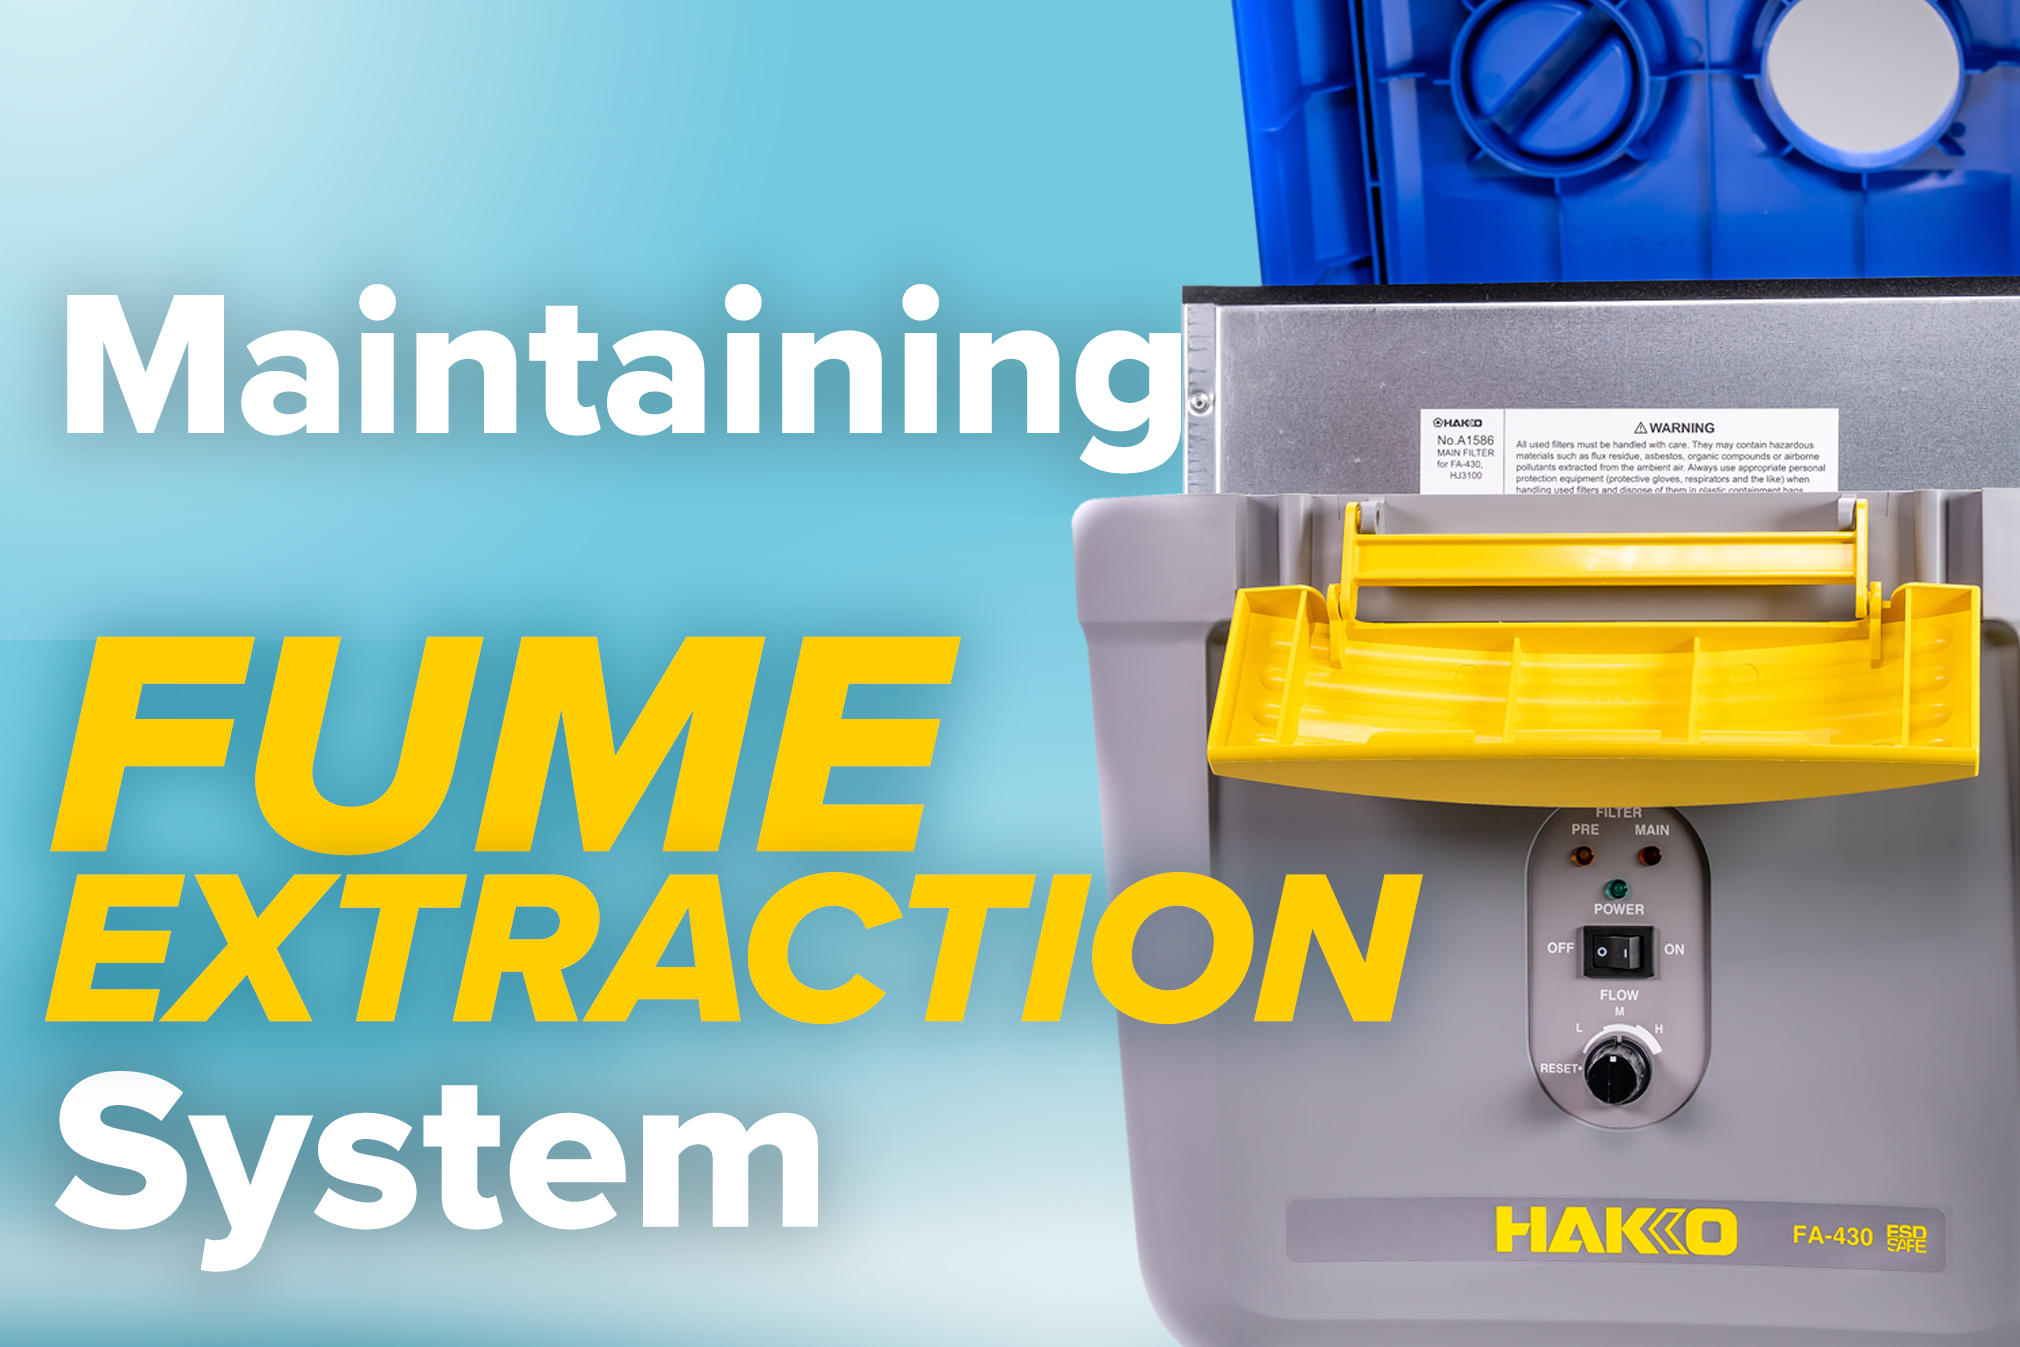 Maintaining your Fume Extraction System